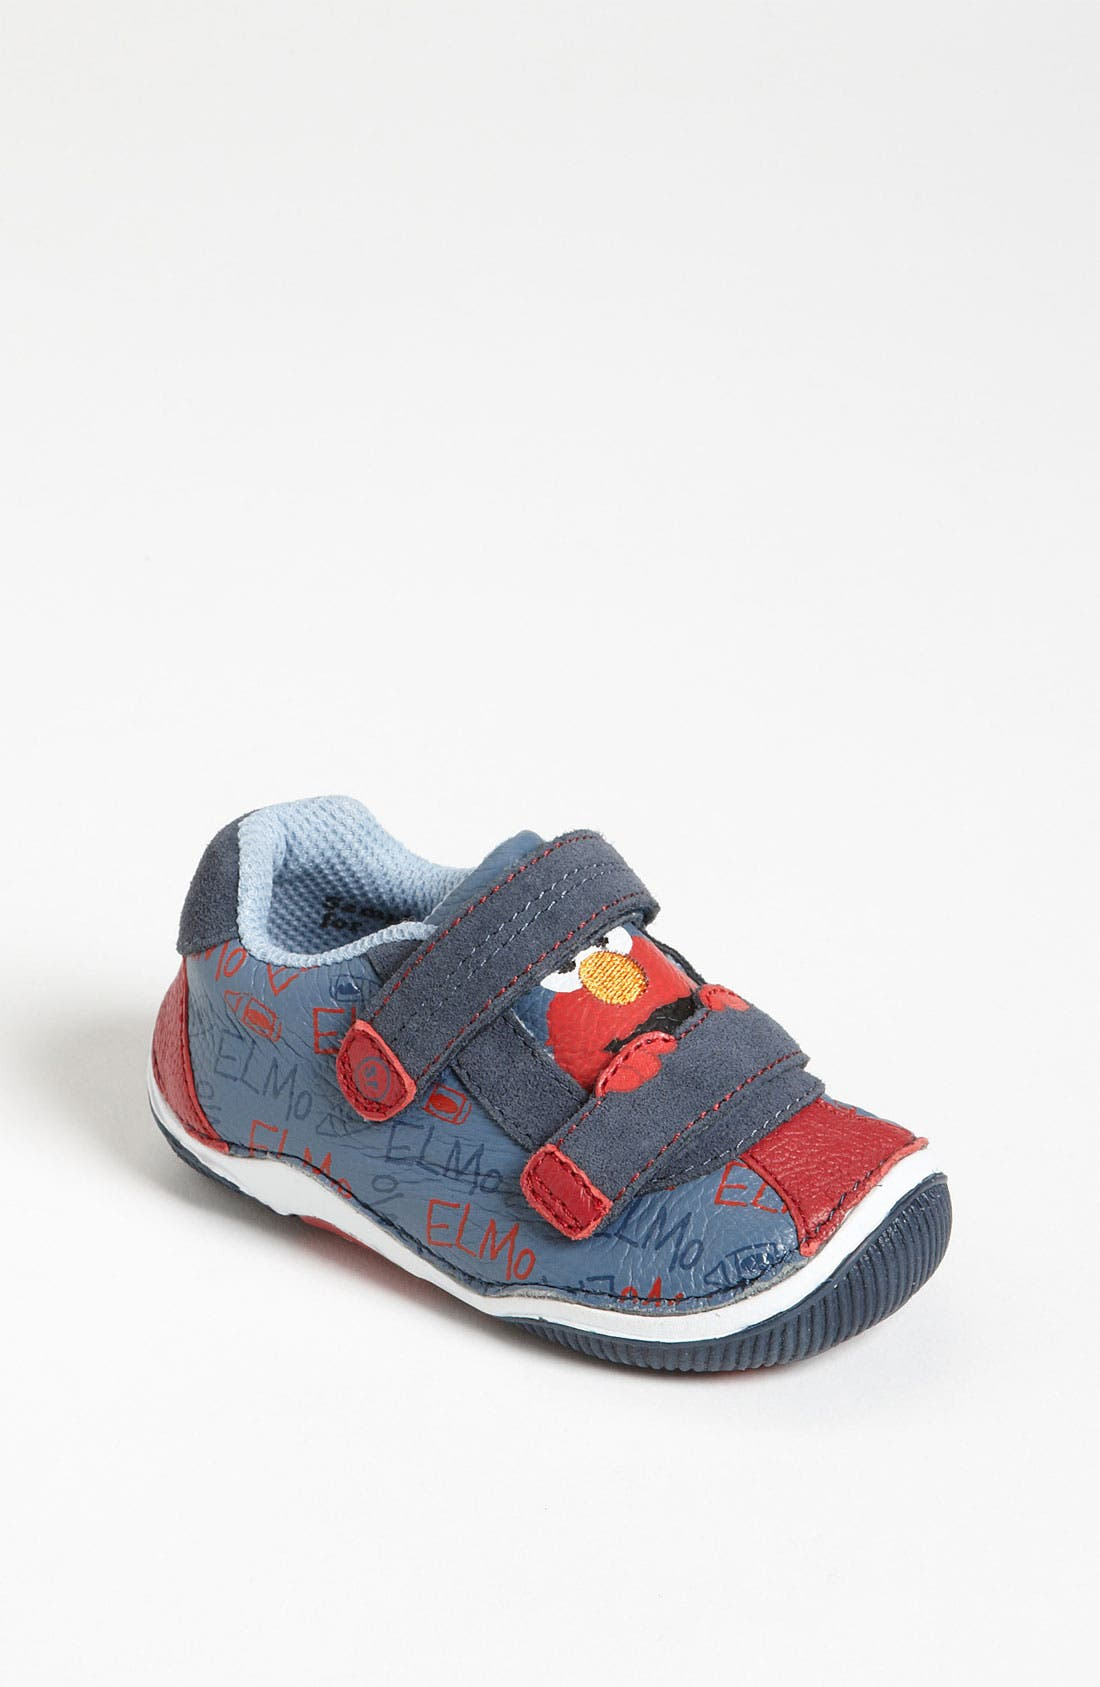 Main Image - Stride Rite 'Elmo' Sneaker (Baby, Walker & Toddler)